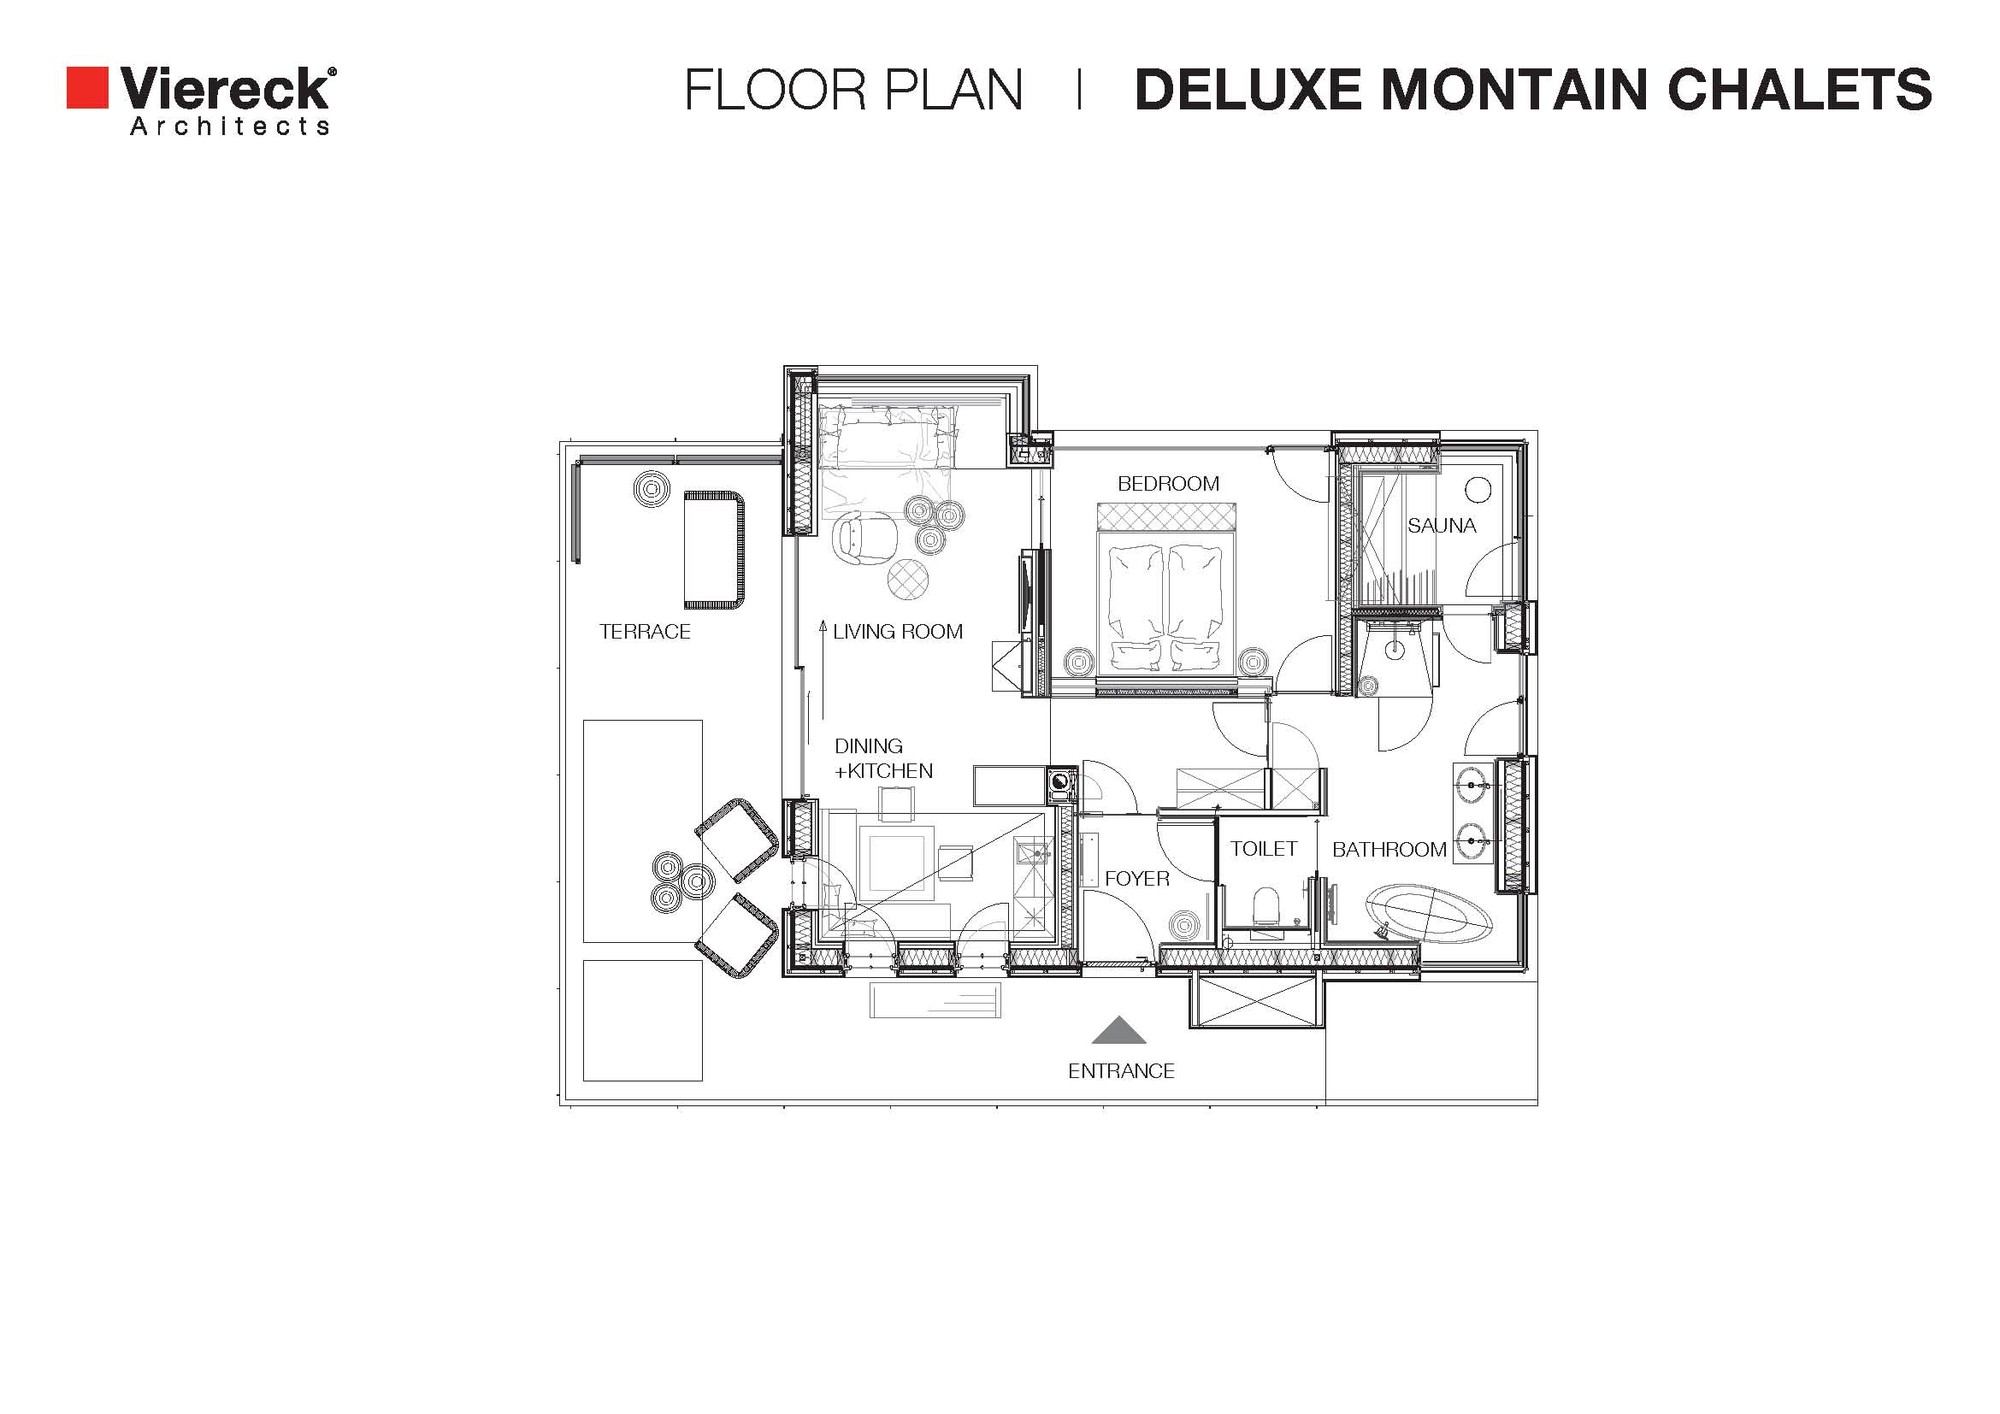 Gallery Of Deluxe Mountain Chalets / Viereck Architects